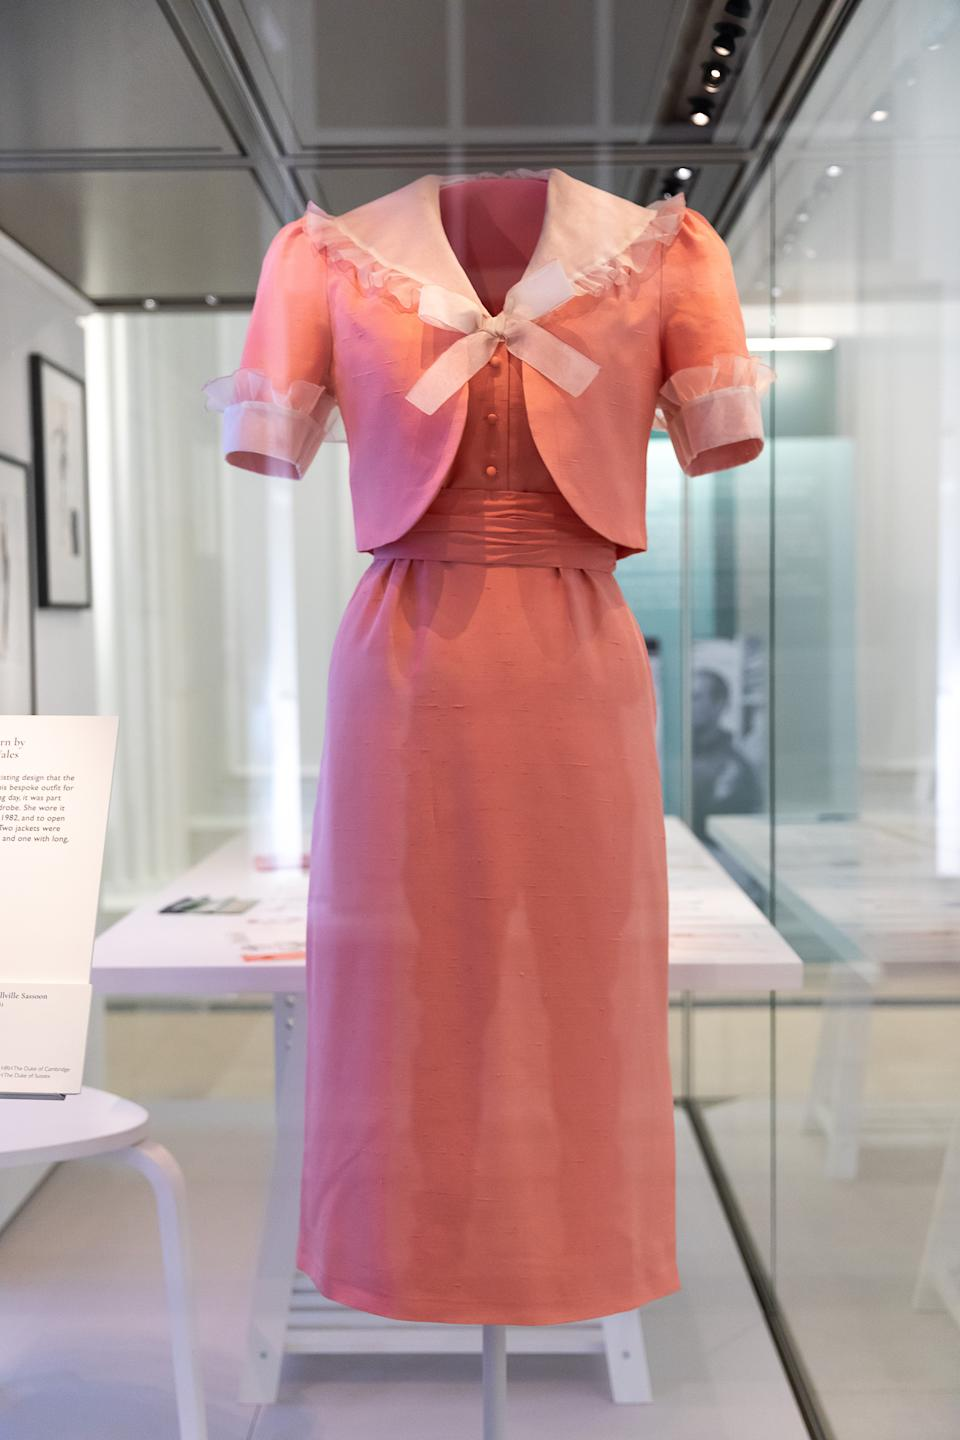 LONDON, ENGLAND - JUNE 02: A dress and jacket worn first worn by Diana, Princess of Wales on her wedding day on display during the